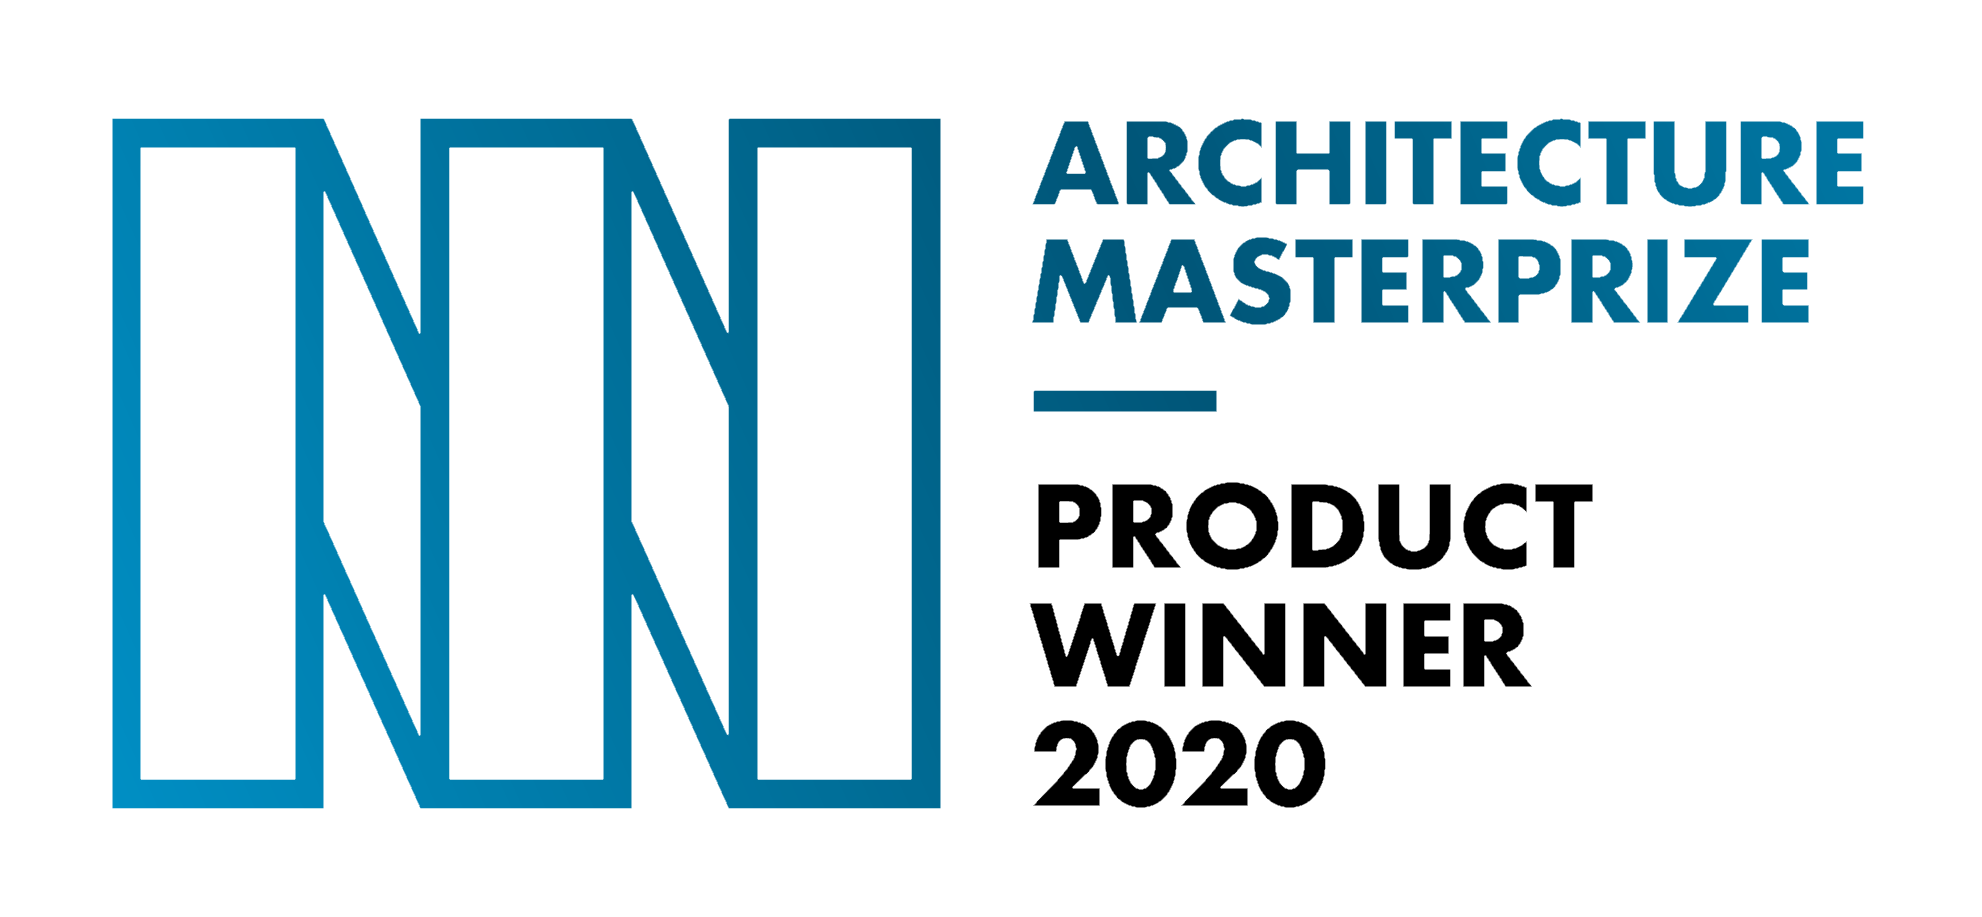 Architecture MasterPrize Awards Nasoni Fountain Faucet Their 2020 Product Design Award - NASONI